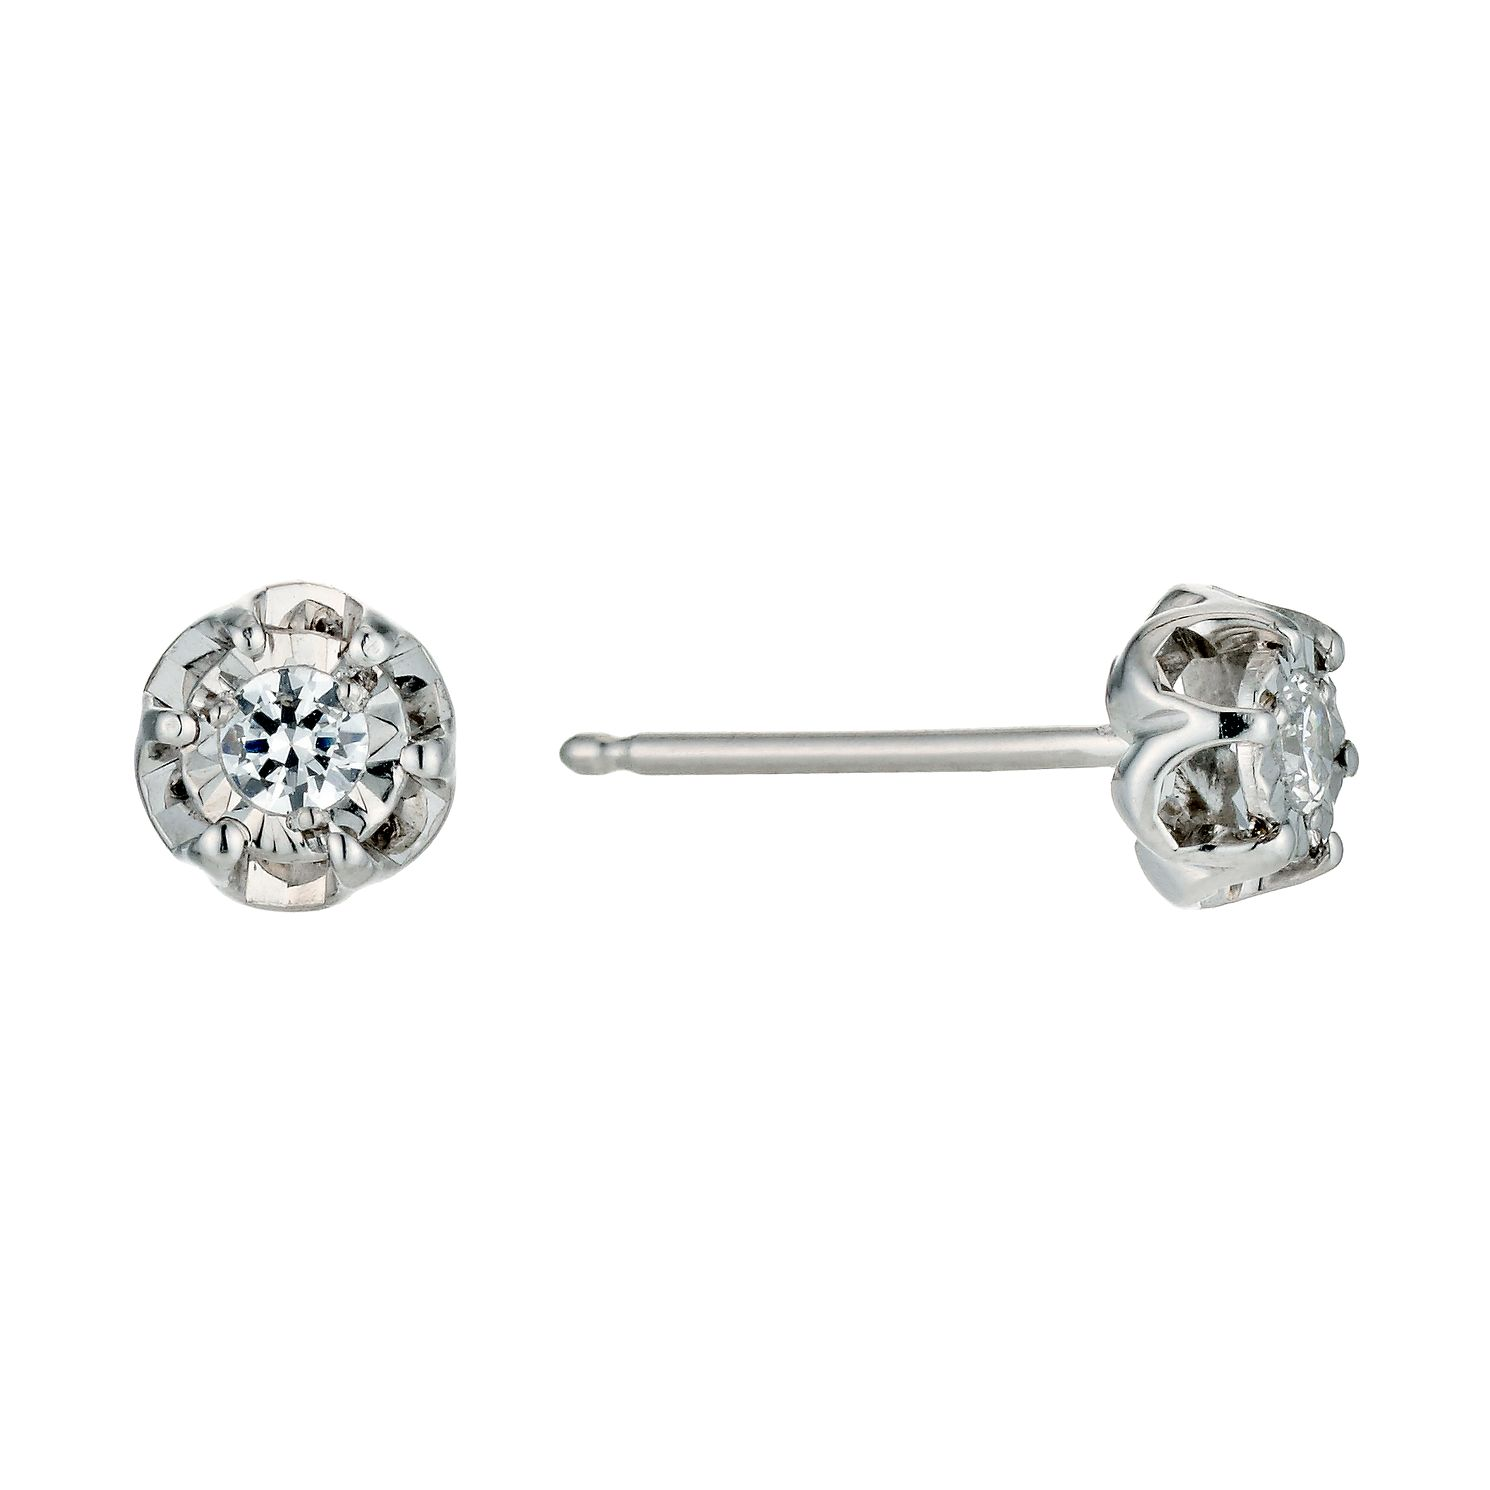 9ct White Gold Diamond Flower Stud Earrings - Product number 9575006